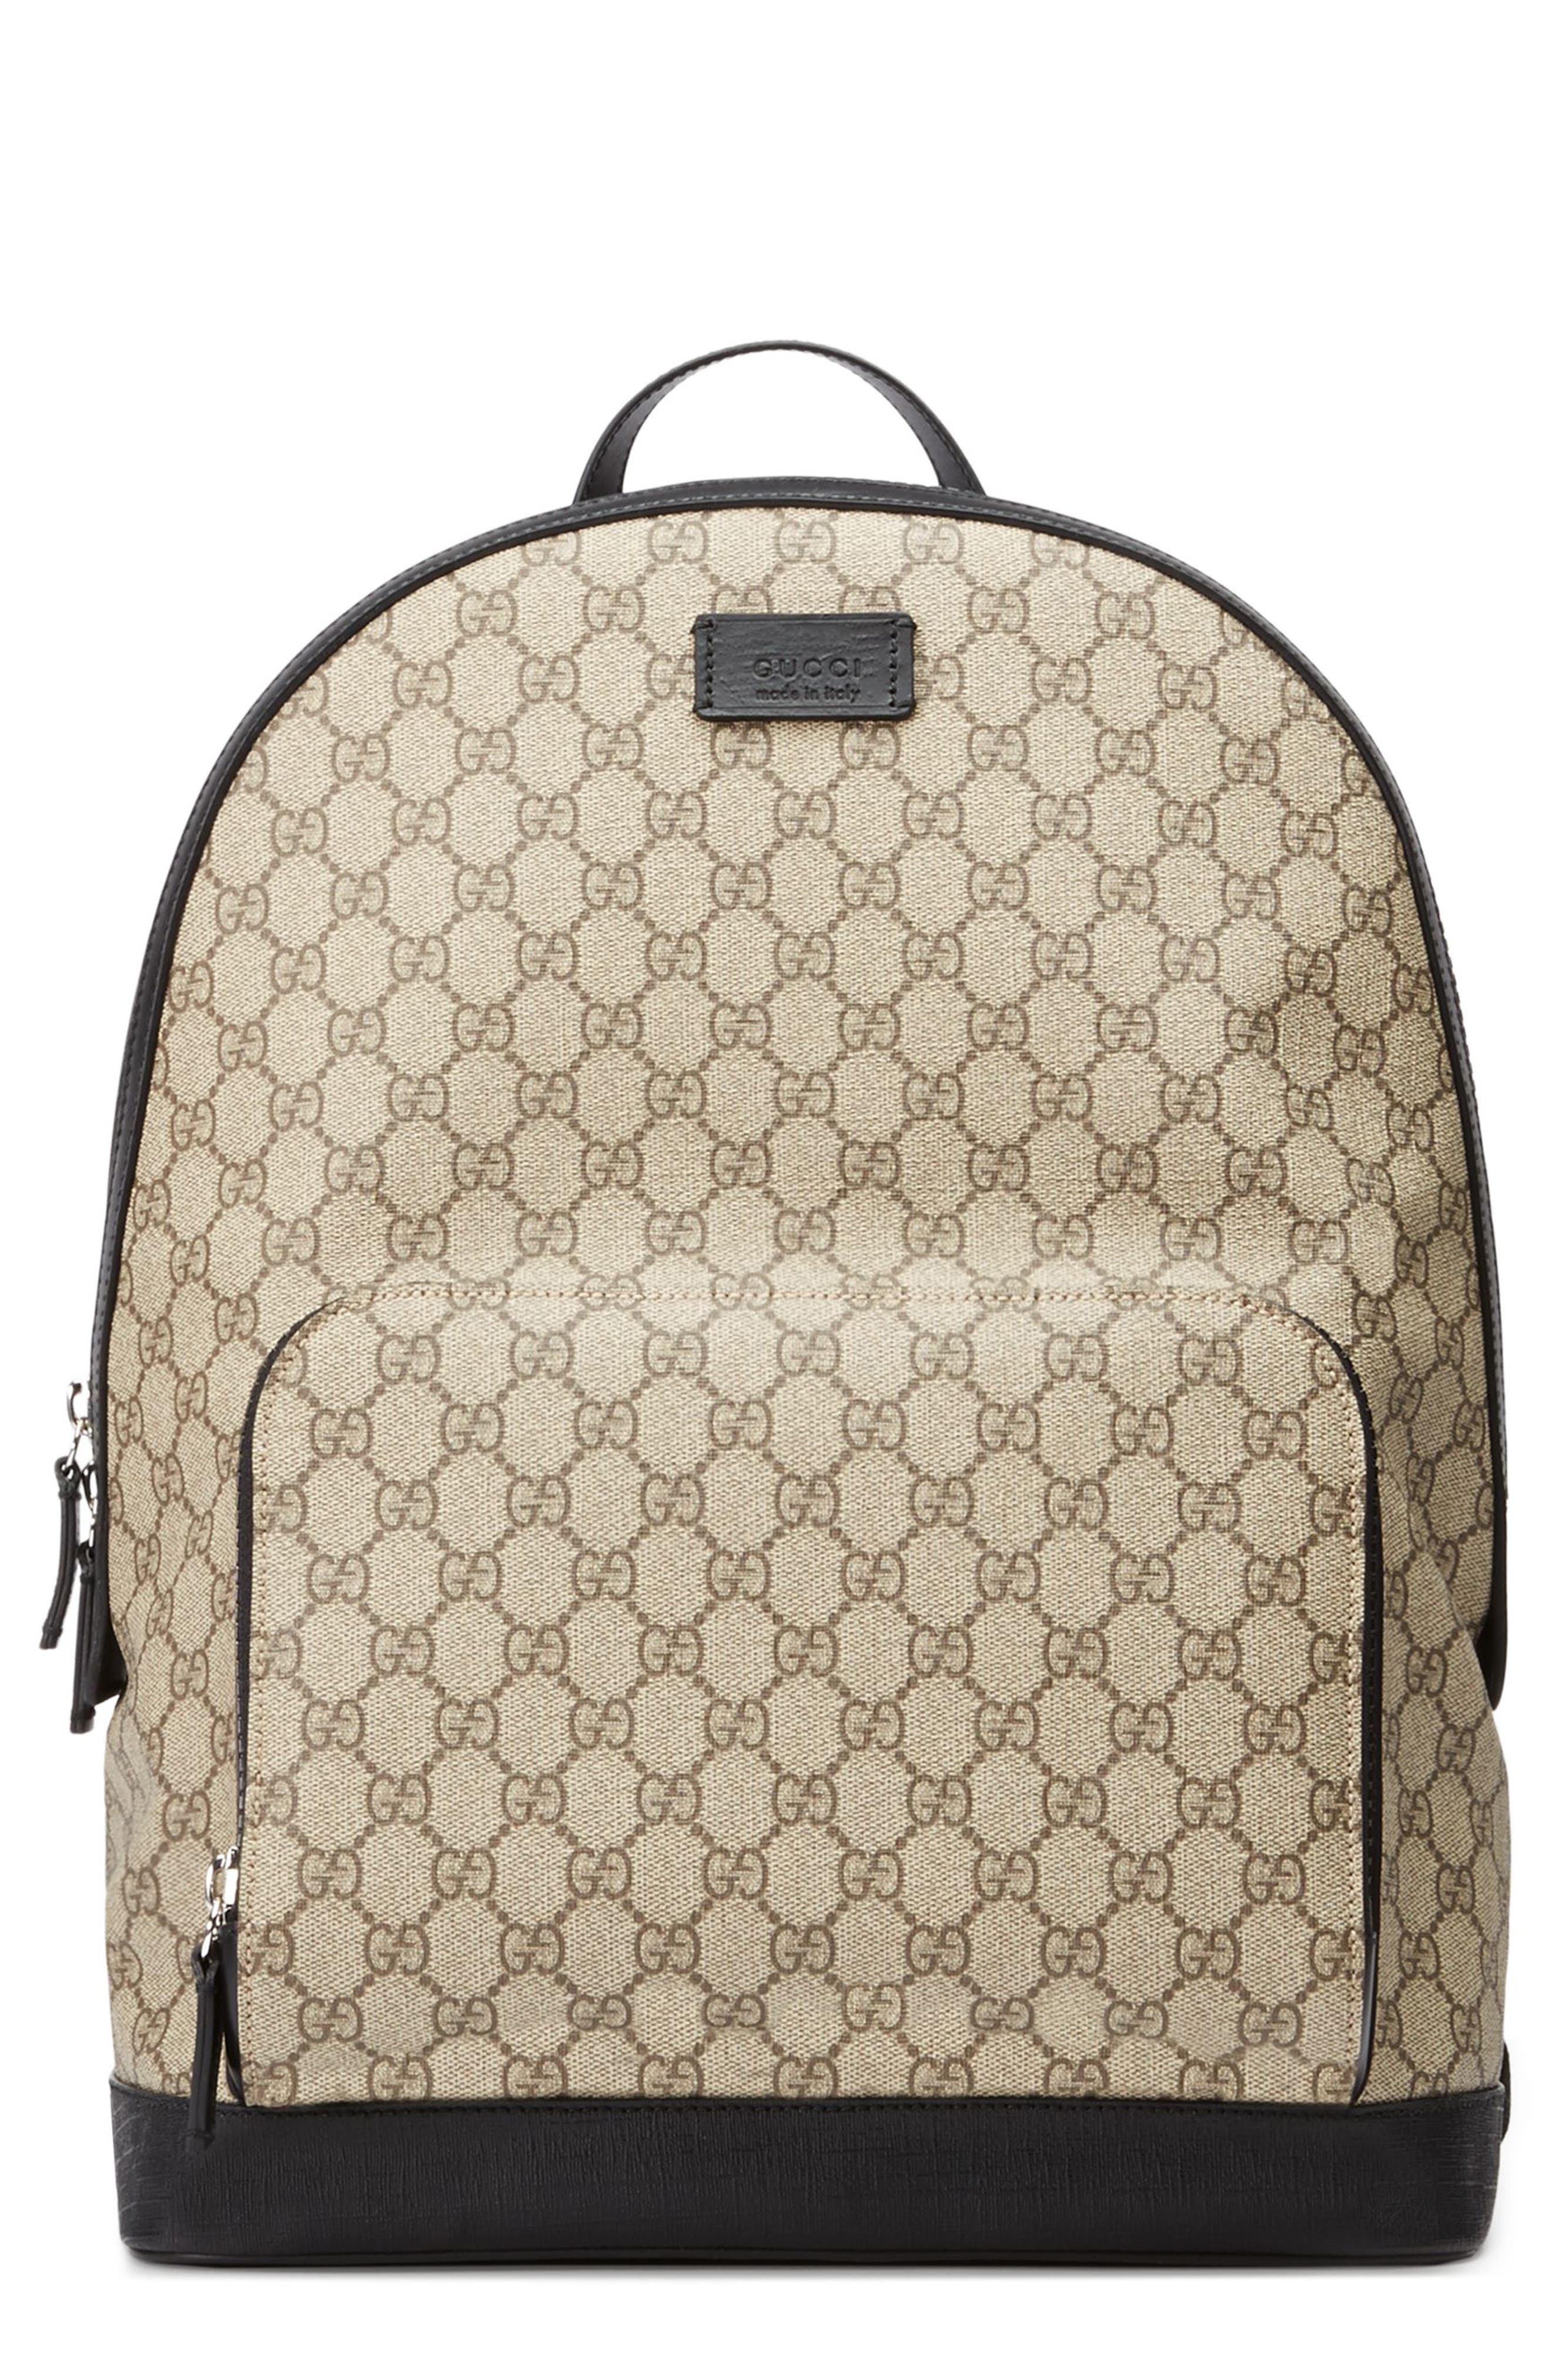 Gucci Eden Canvas Backpack